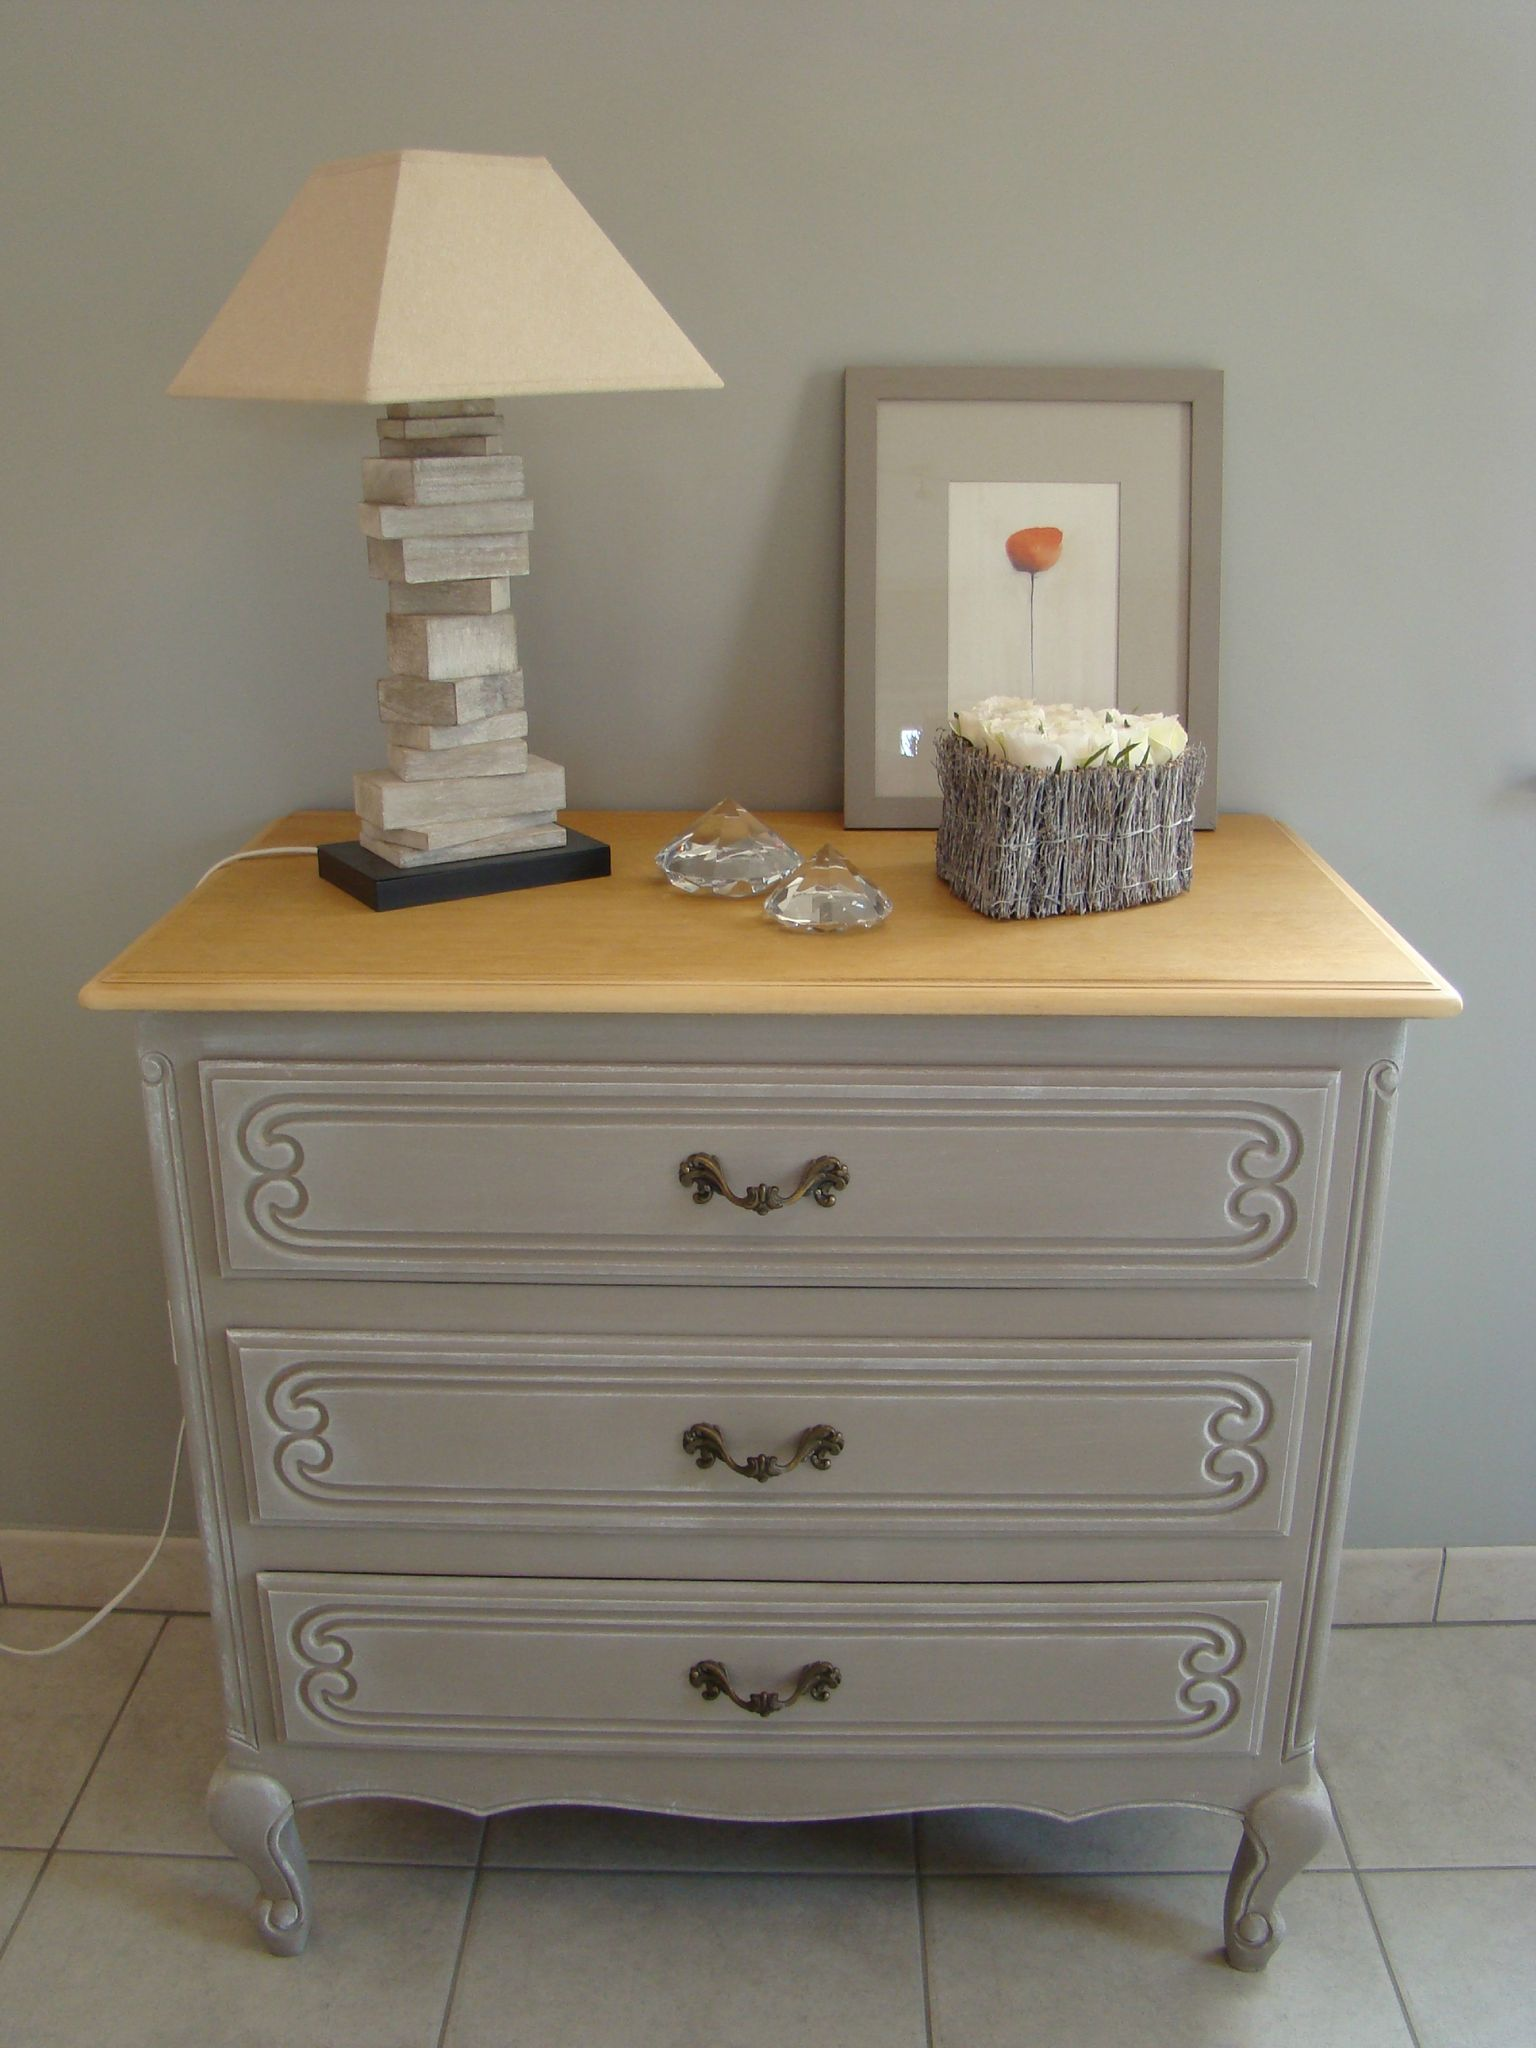 Commode 3 tiroirs photo de relooking relooking meubles - Commode couleur taupe ...